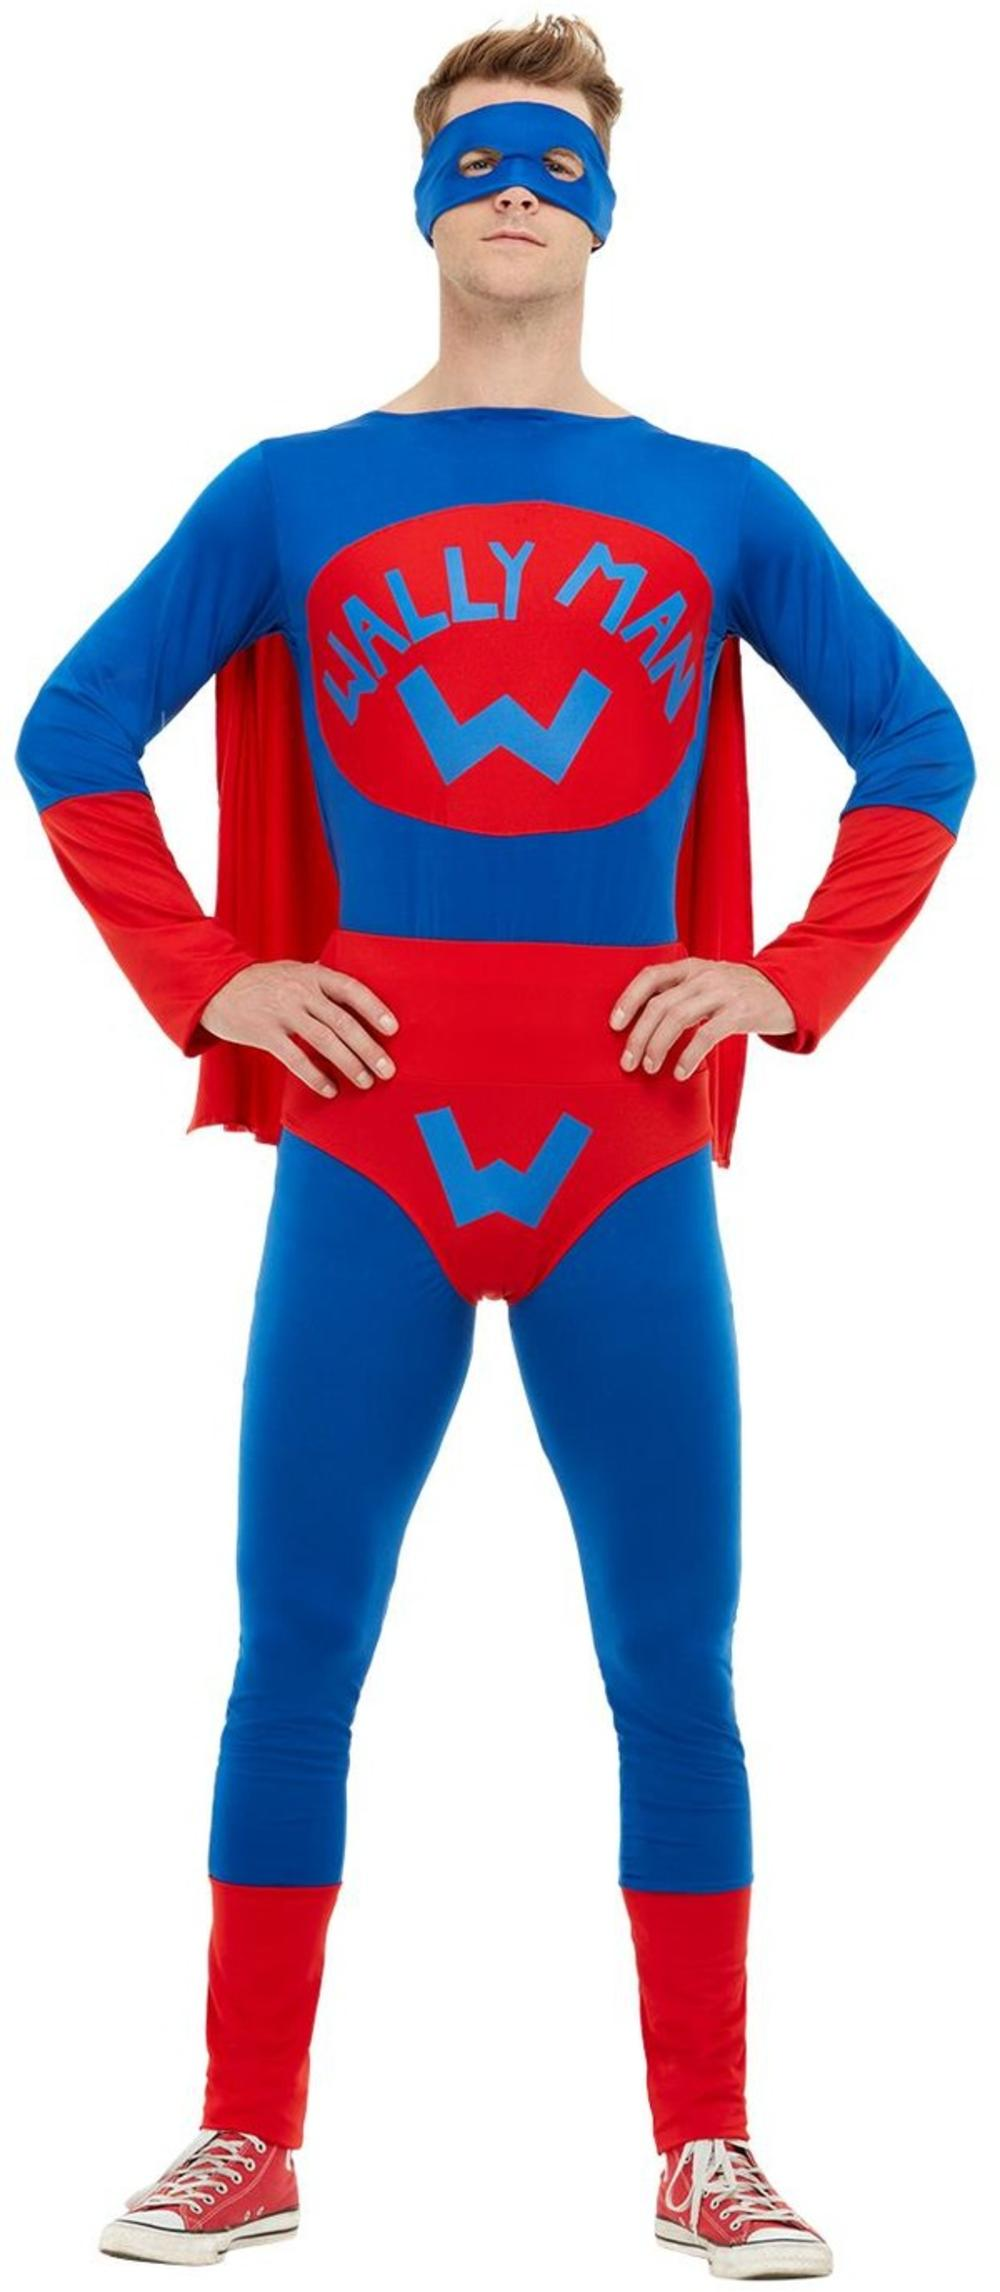 Wallyman Mens Fancy Dress Funny Superhero Adults Stag Night Party Costume Outfit